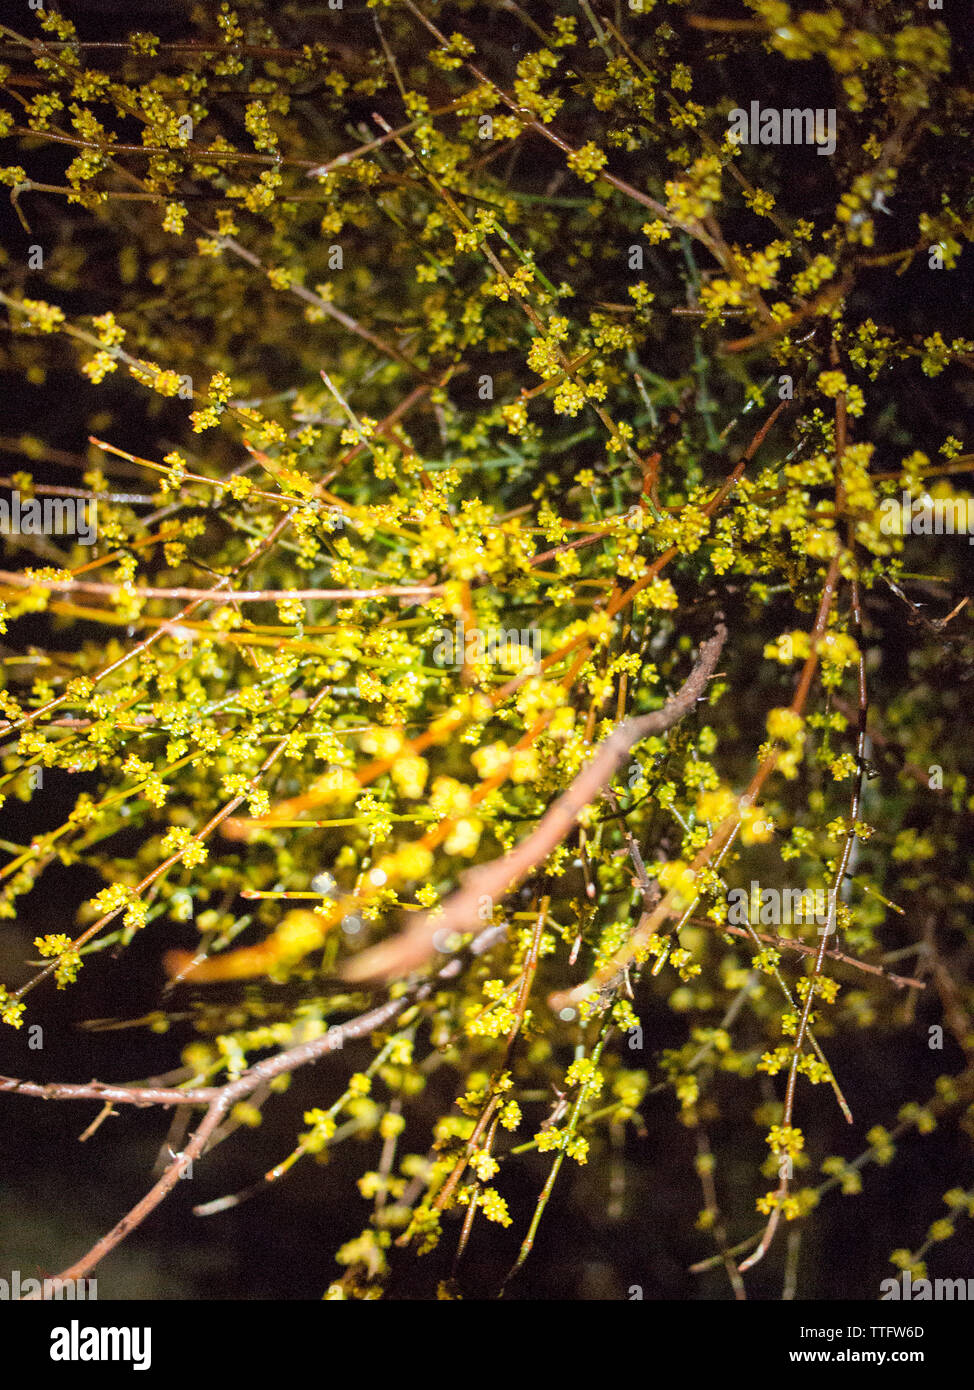 Branches and yellow flowers illuminated by a hikers headlamp. - Stock Image